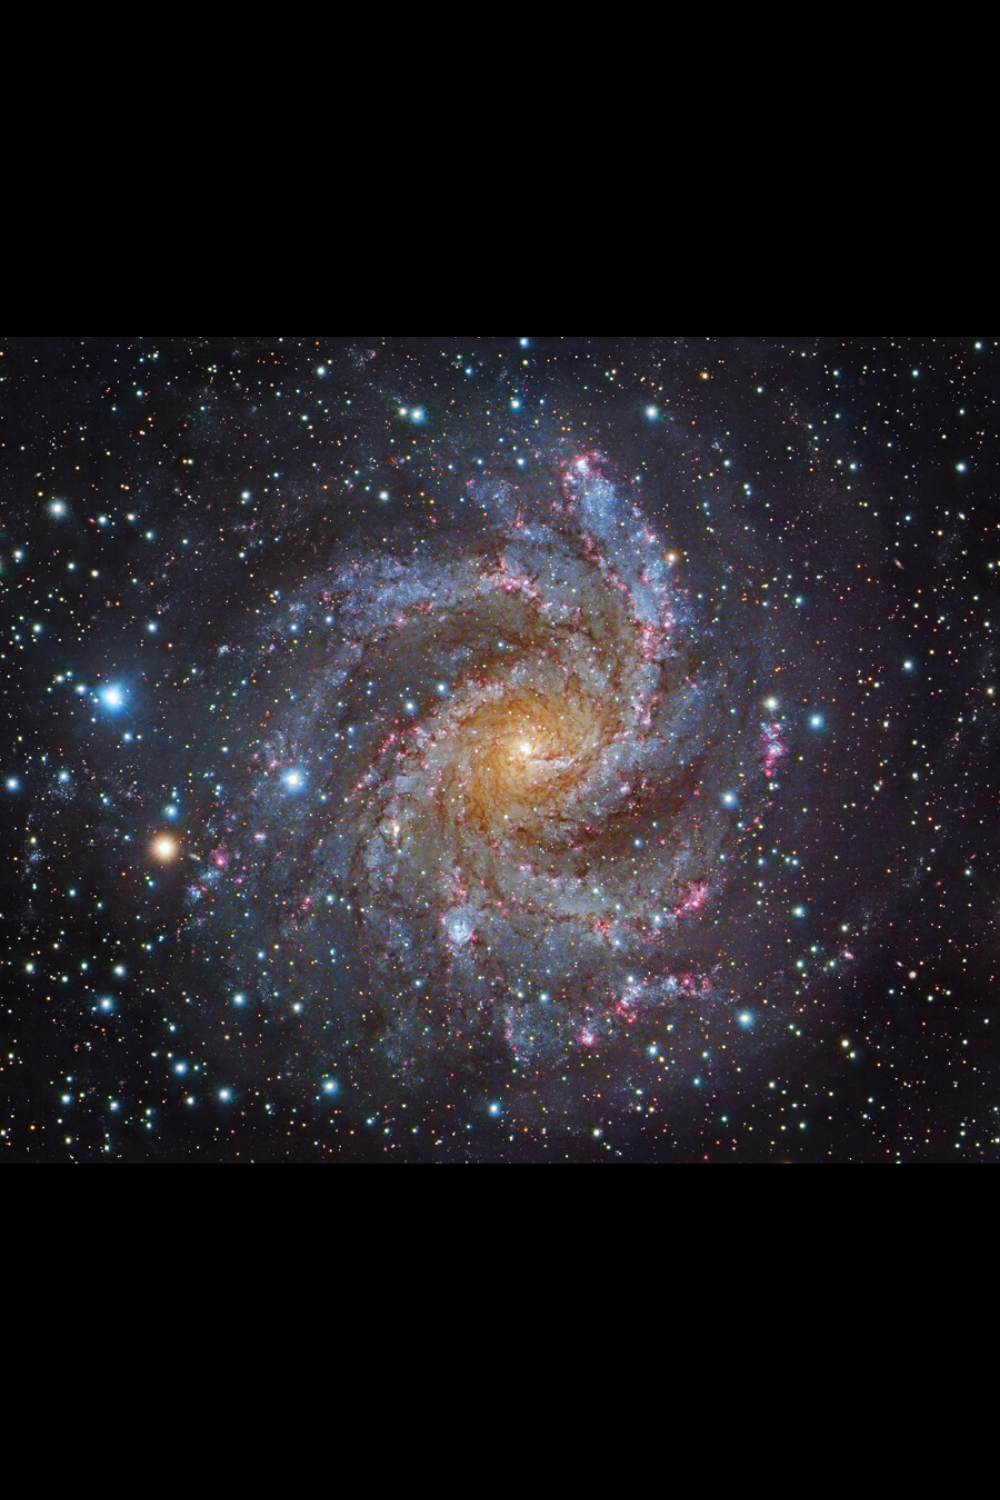 Ngc 6946 The Fireworks Galaxy Spiral Galaxy Space And Astronomy Planets And Moons